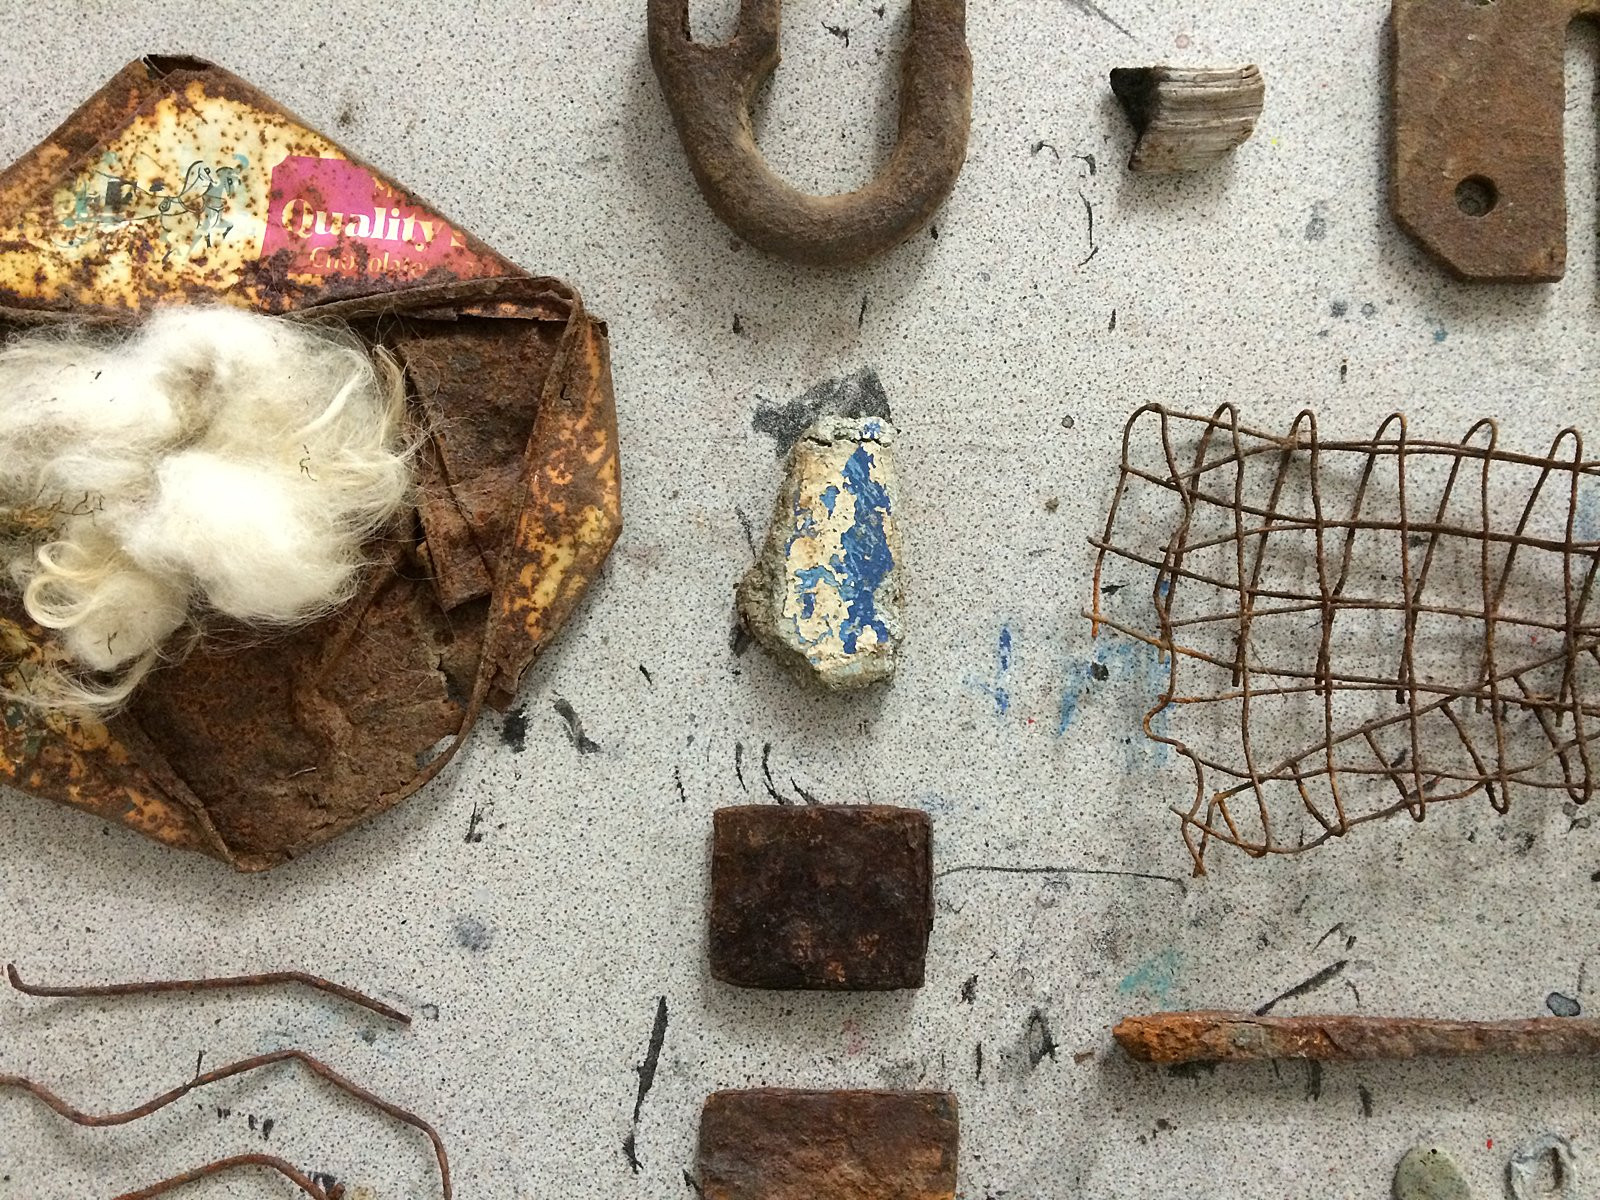 A closeup of rusted and other found objects placed on a grey speckled surface.